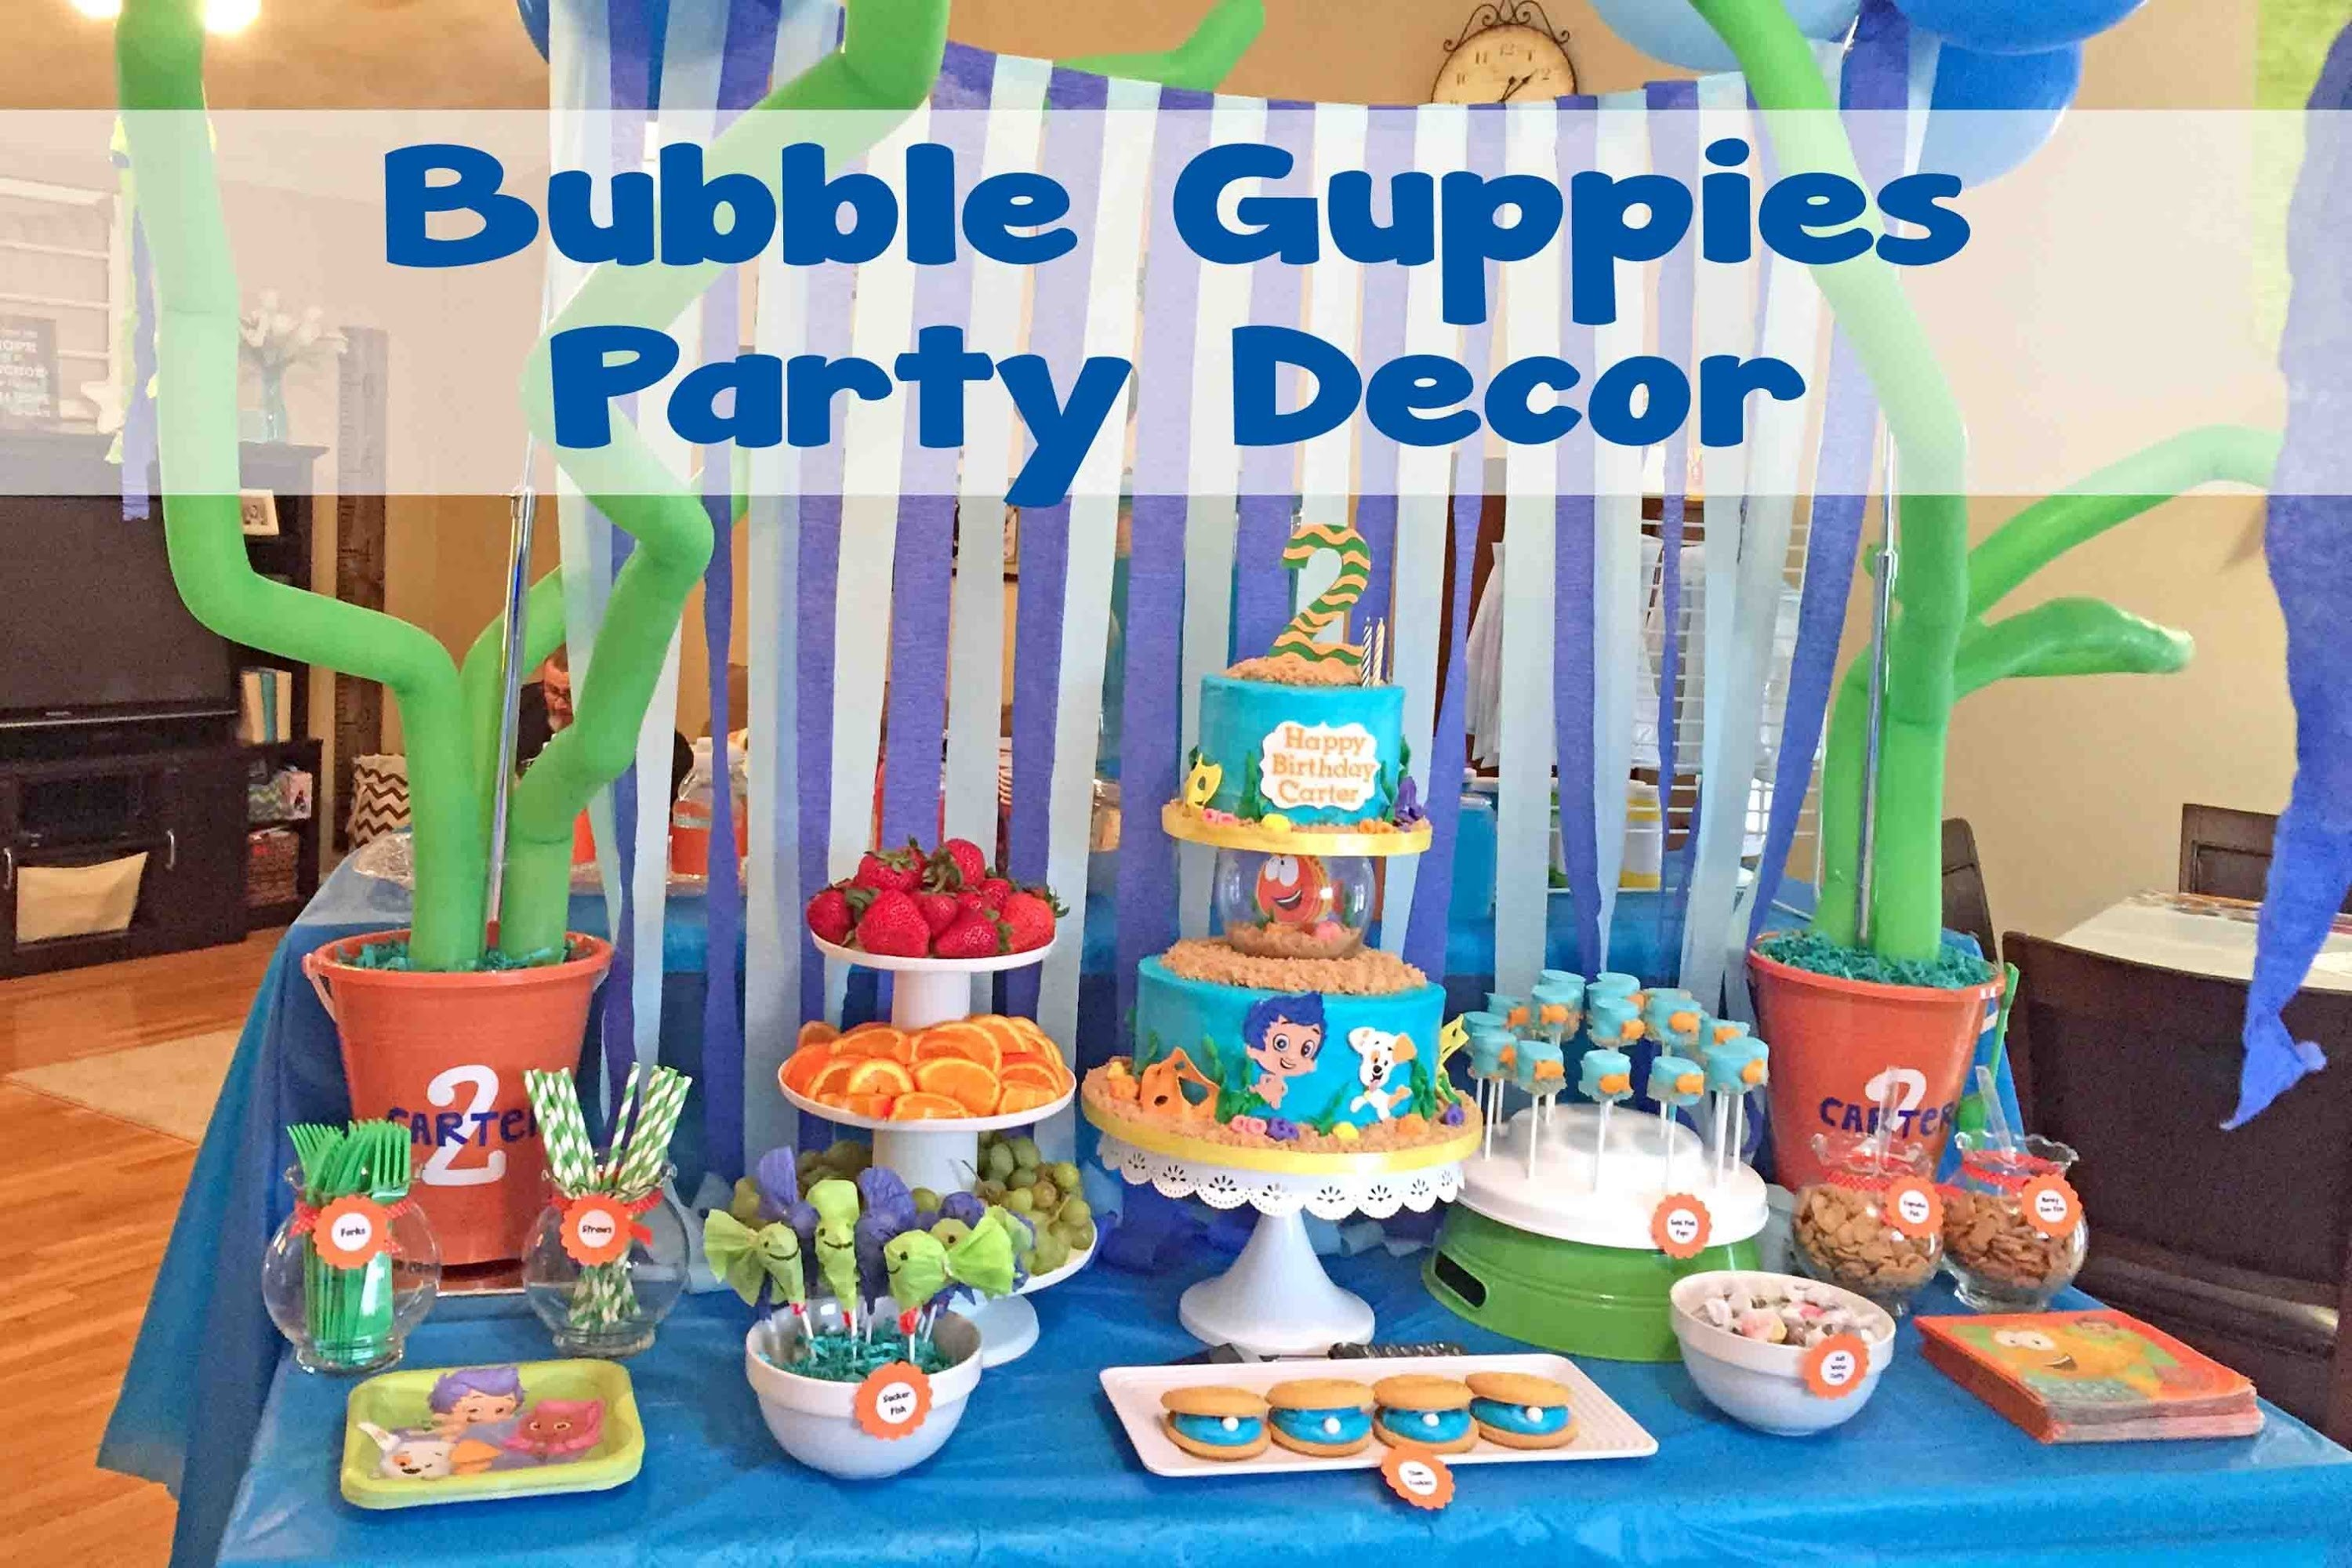 10 Gorgeous Bubble Guppies Party Food Ideas bubble guppies under the sea party decor 48 youtube 2 2020